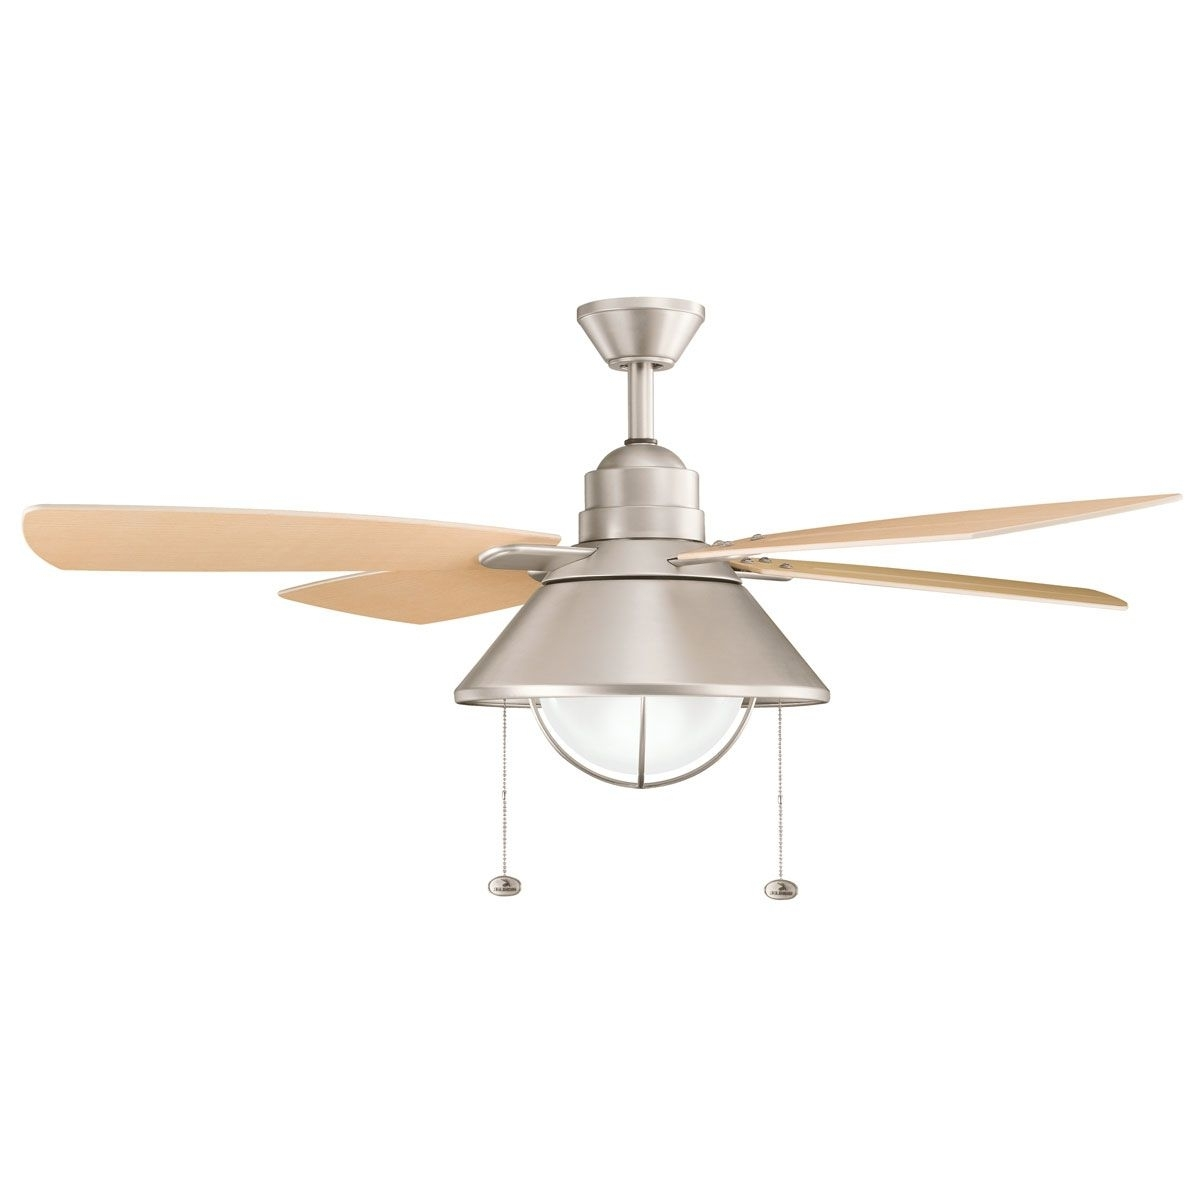 Ideas For The Within Nautical Outdoor Ceiling Fans With Lights (Gallery 7 of 20)